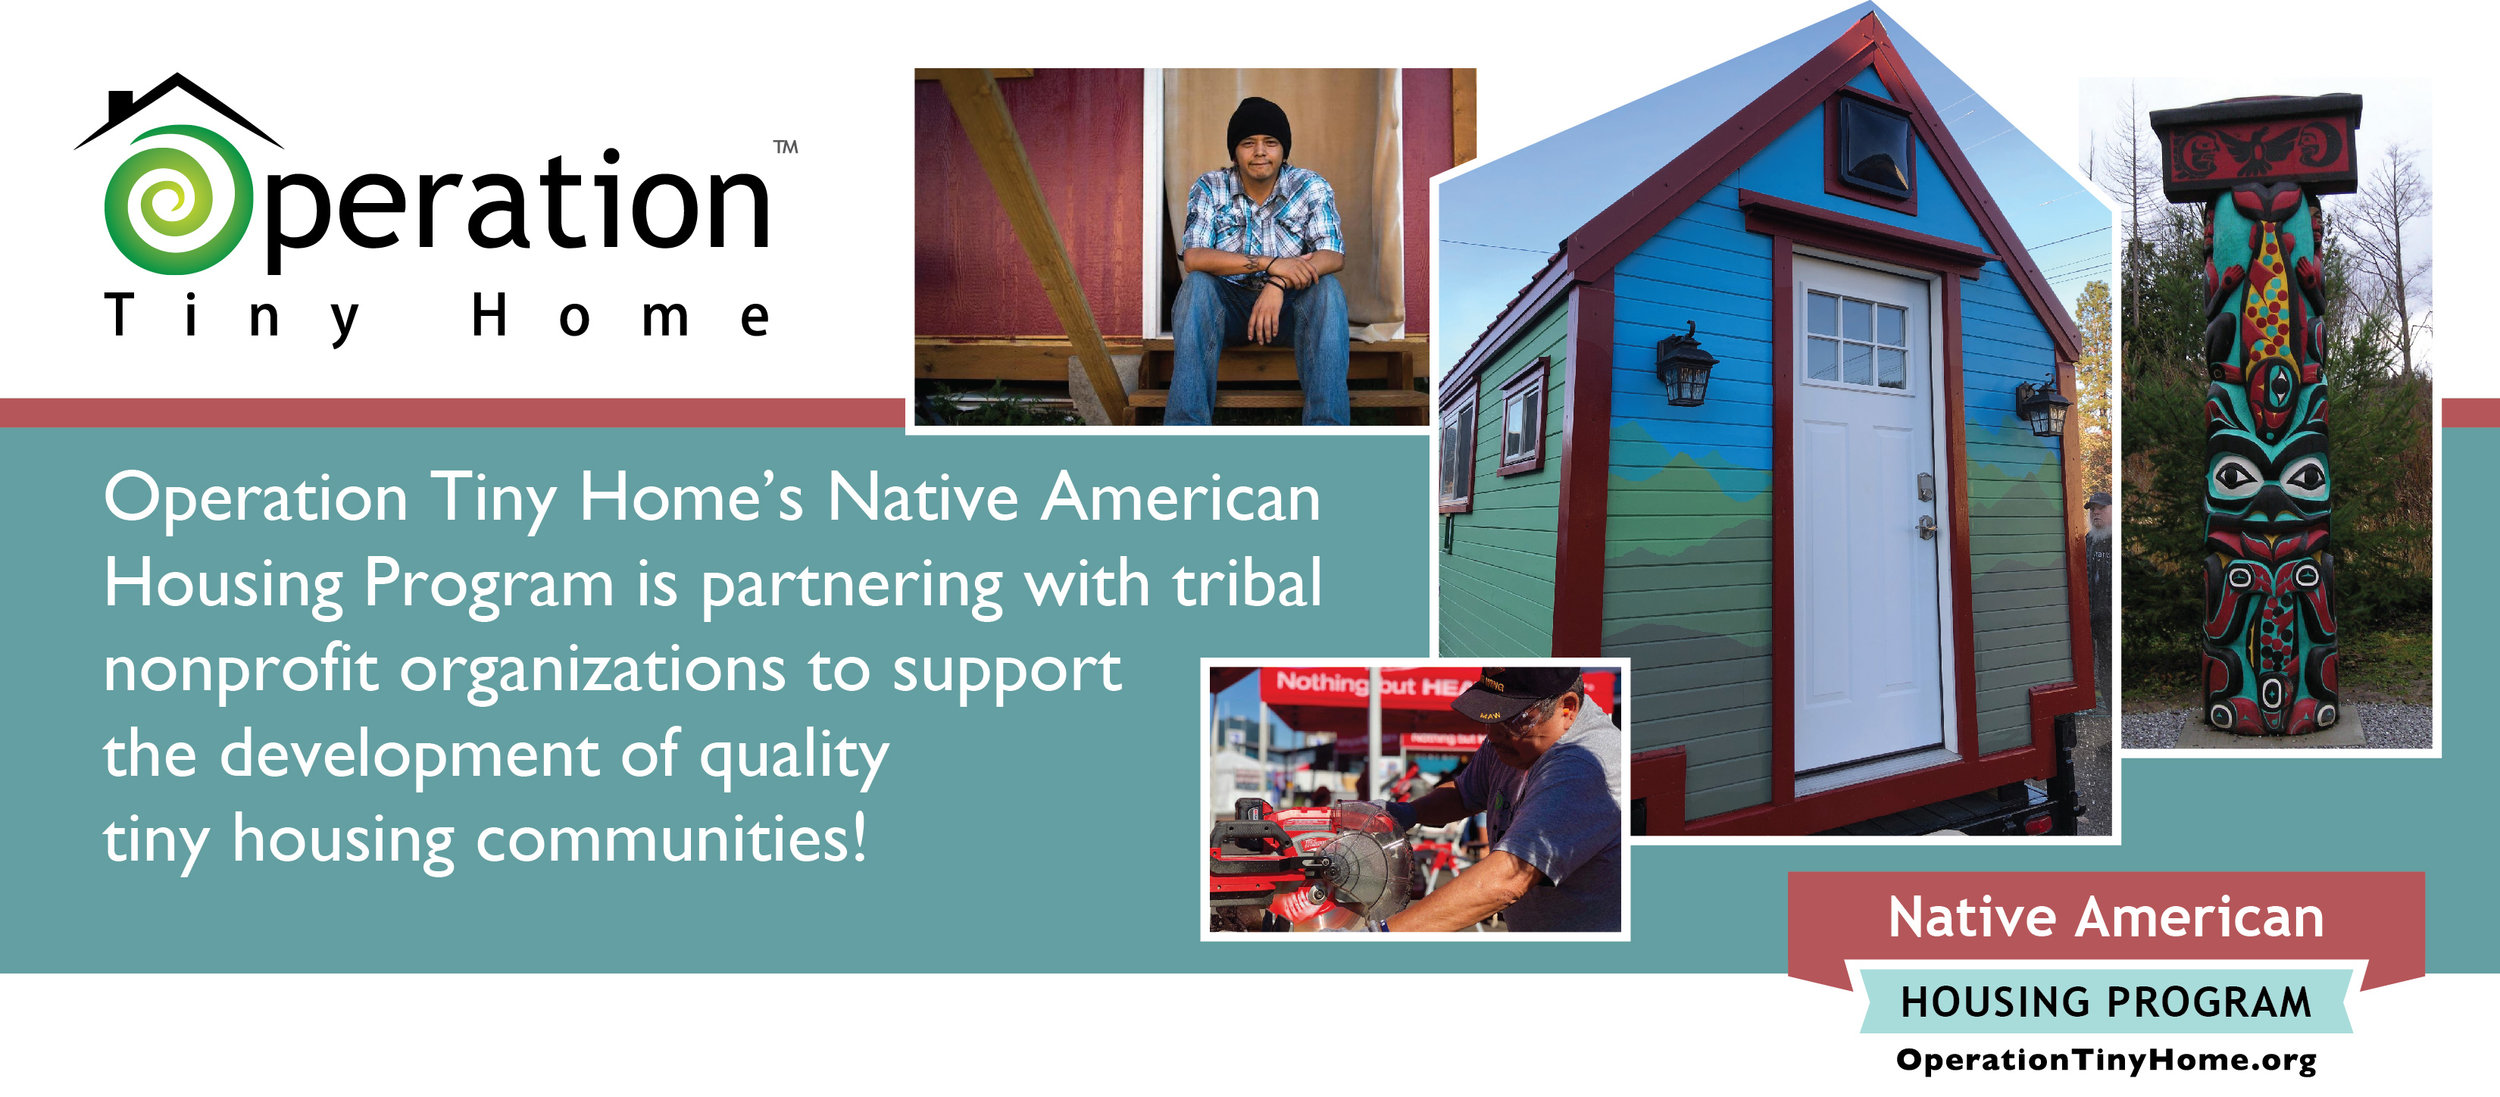 Dignity Housing For Native Americans — Operation Tiny Home on nigerian home designs, victorian home designs, irish home designs, native american office decorations, european home designs, rustic southwest home designs, native american interior design ideas, southwestern home designs, puerto rican home designs, native american home ideas, native american bedroom design, african home designs, native american log houses, 1800's home designs, disabled home designs, cowboy home designs, central american home designs, hawaiian home designs, western style home designs, mexican home designs,